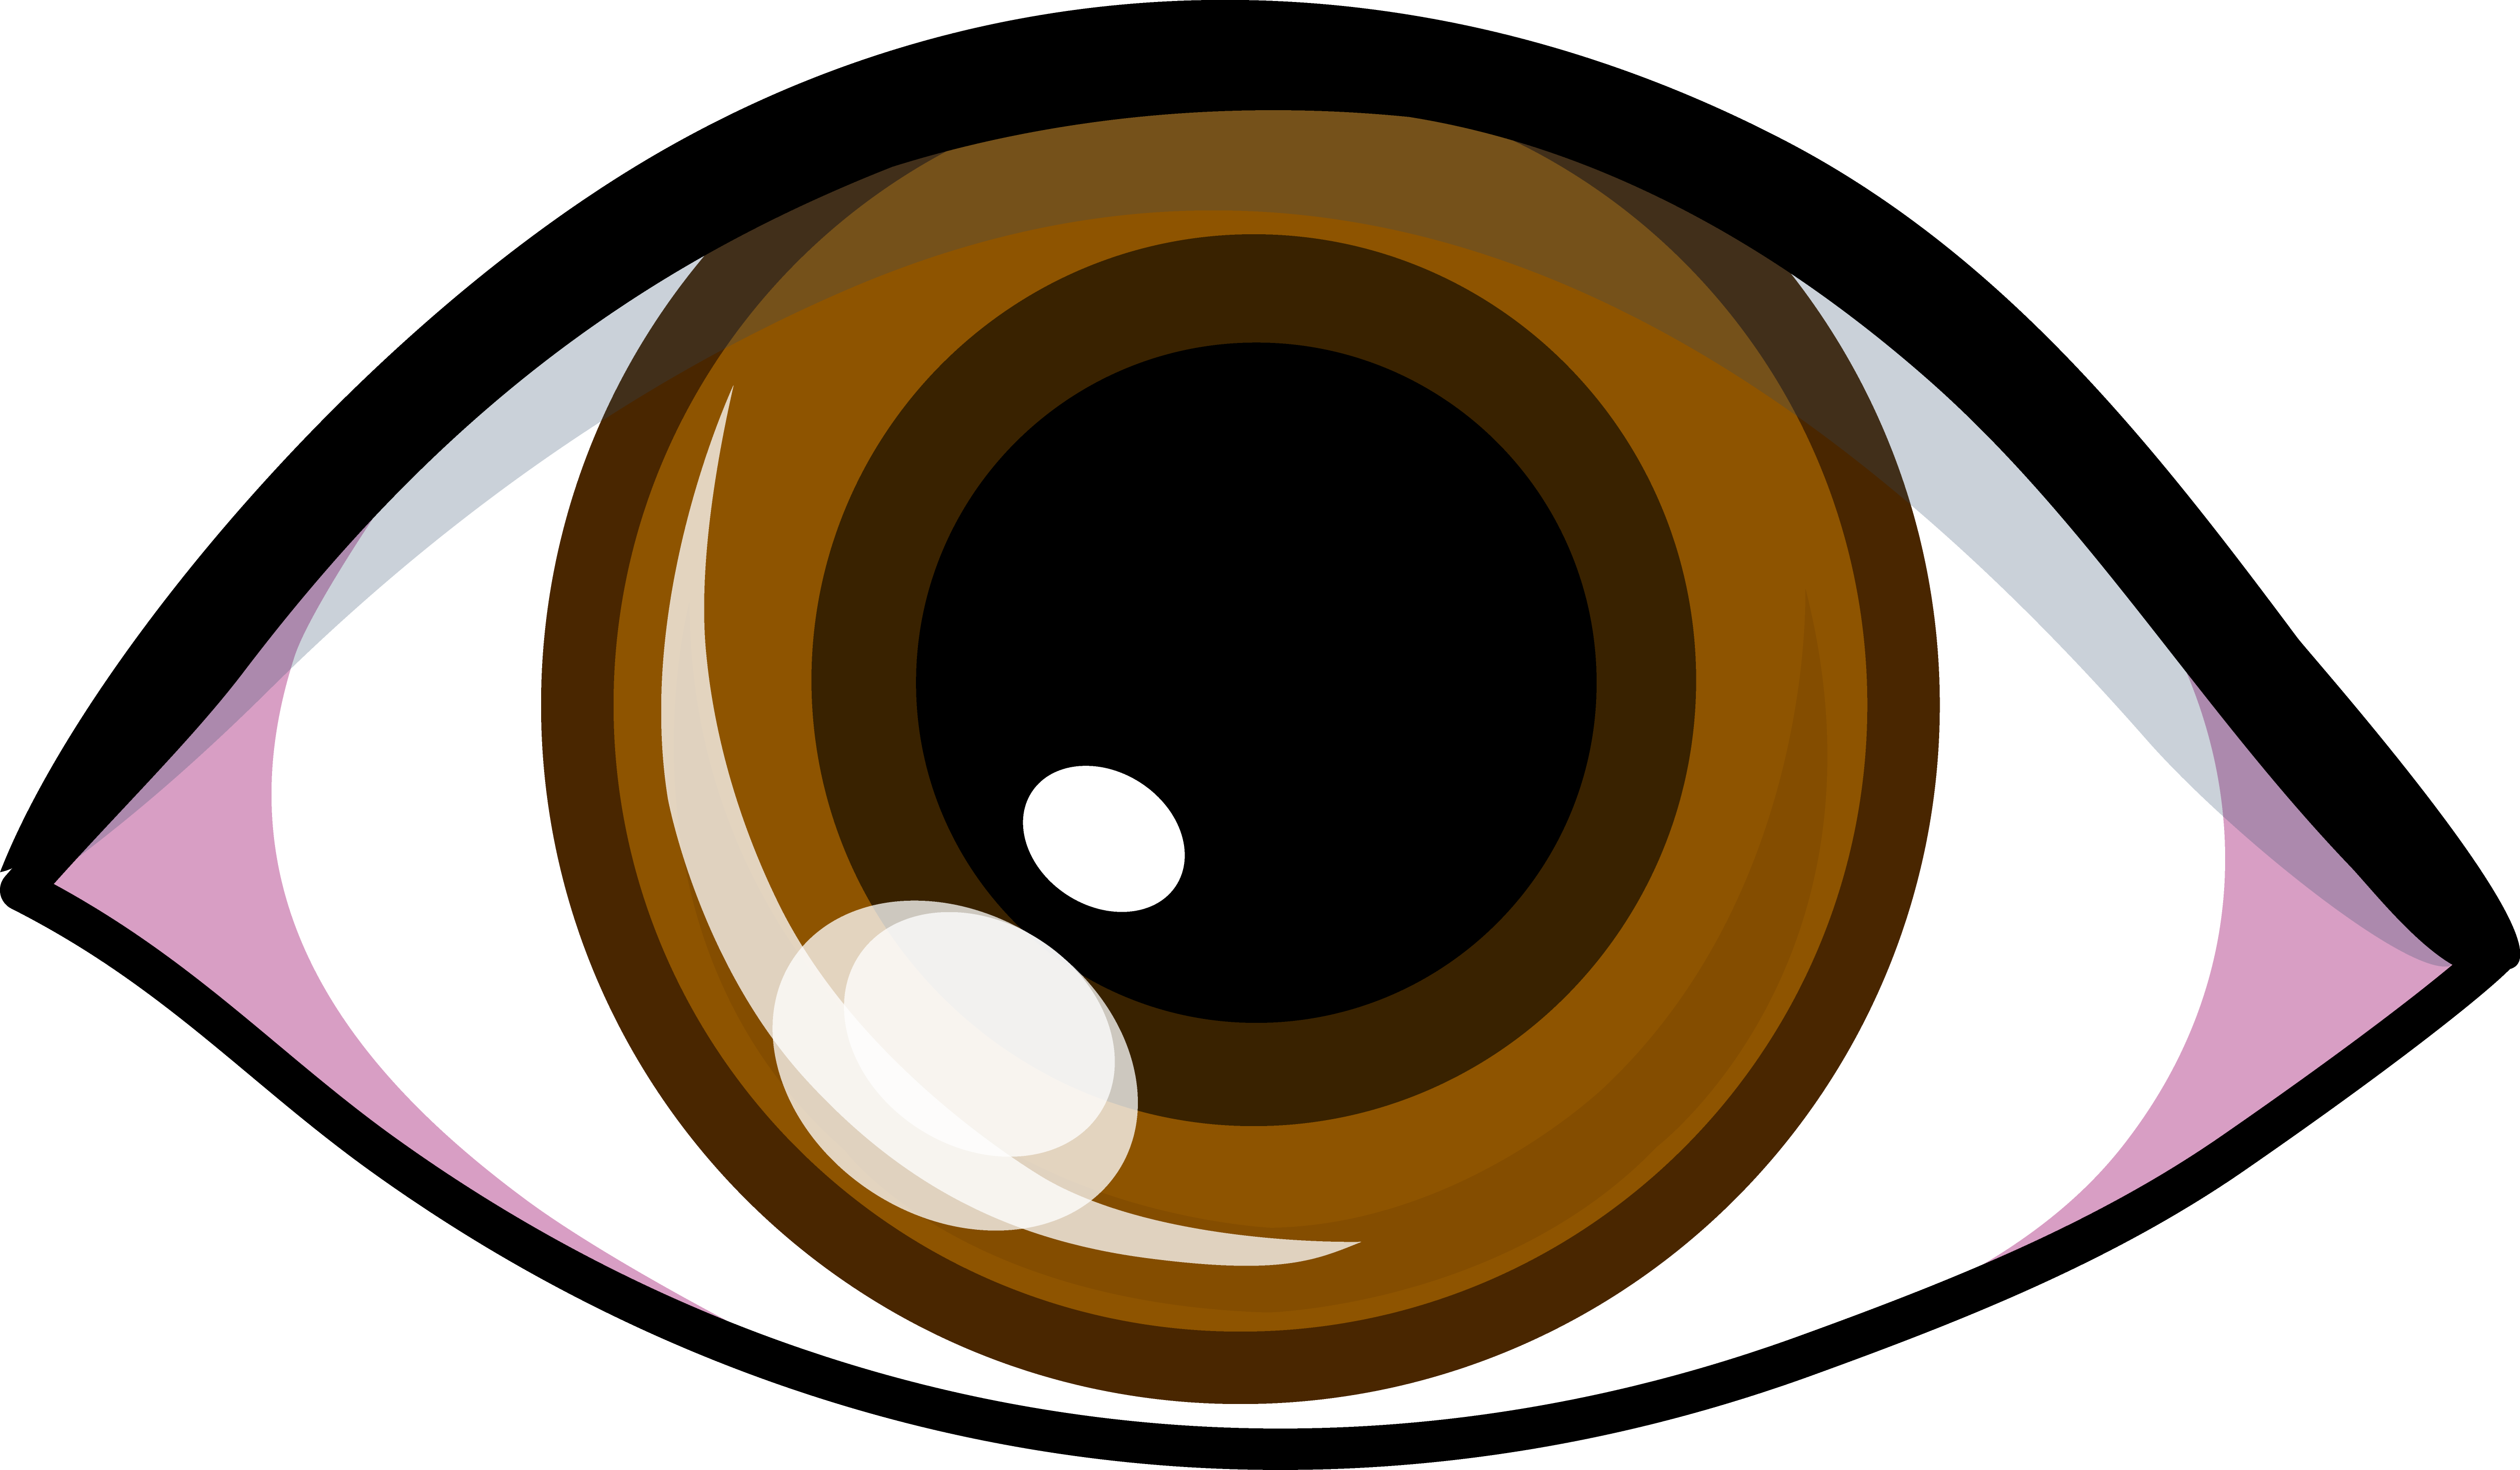 eye png cartoon